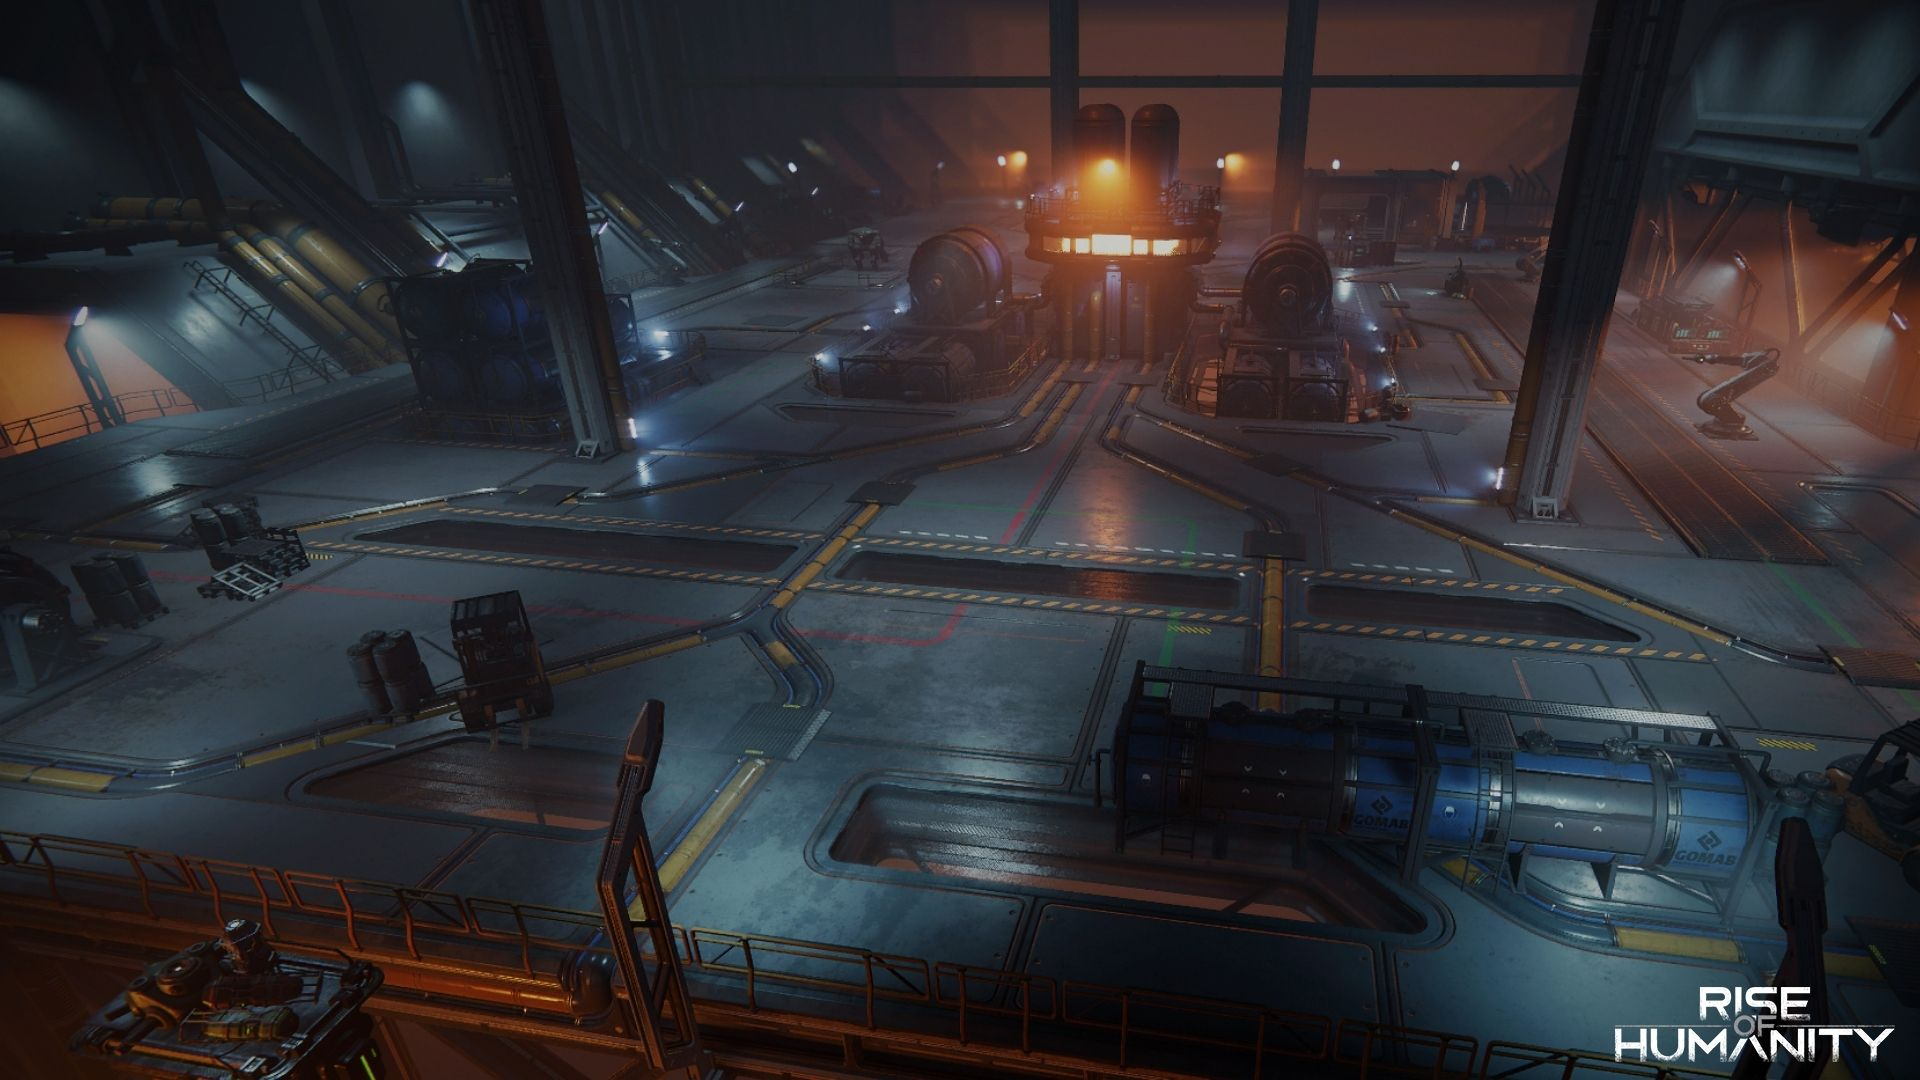 The Factory - another exciting new location in Rise of Humanity with many bots to battle!